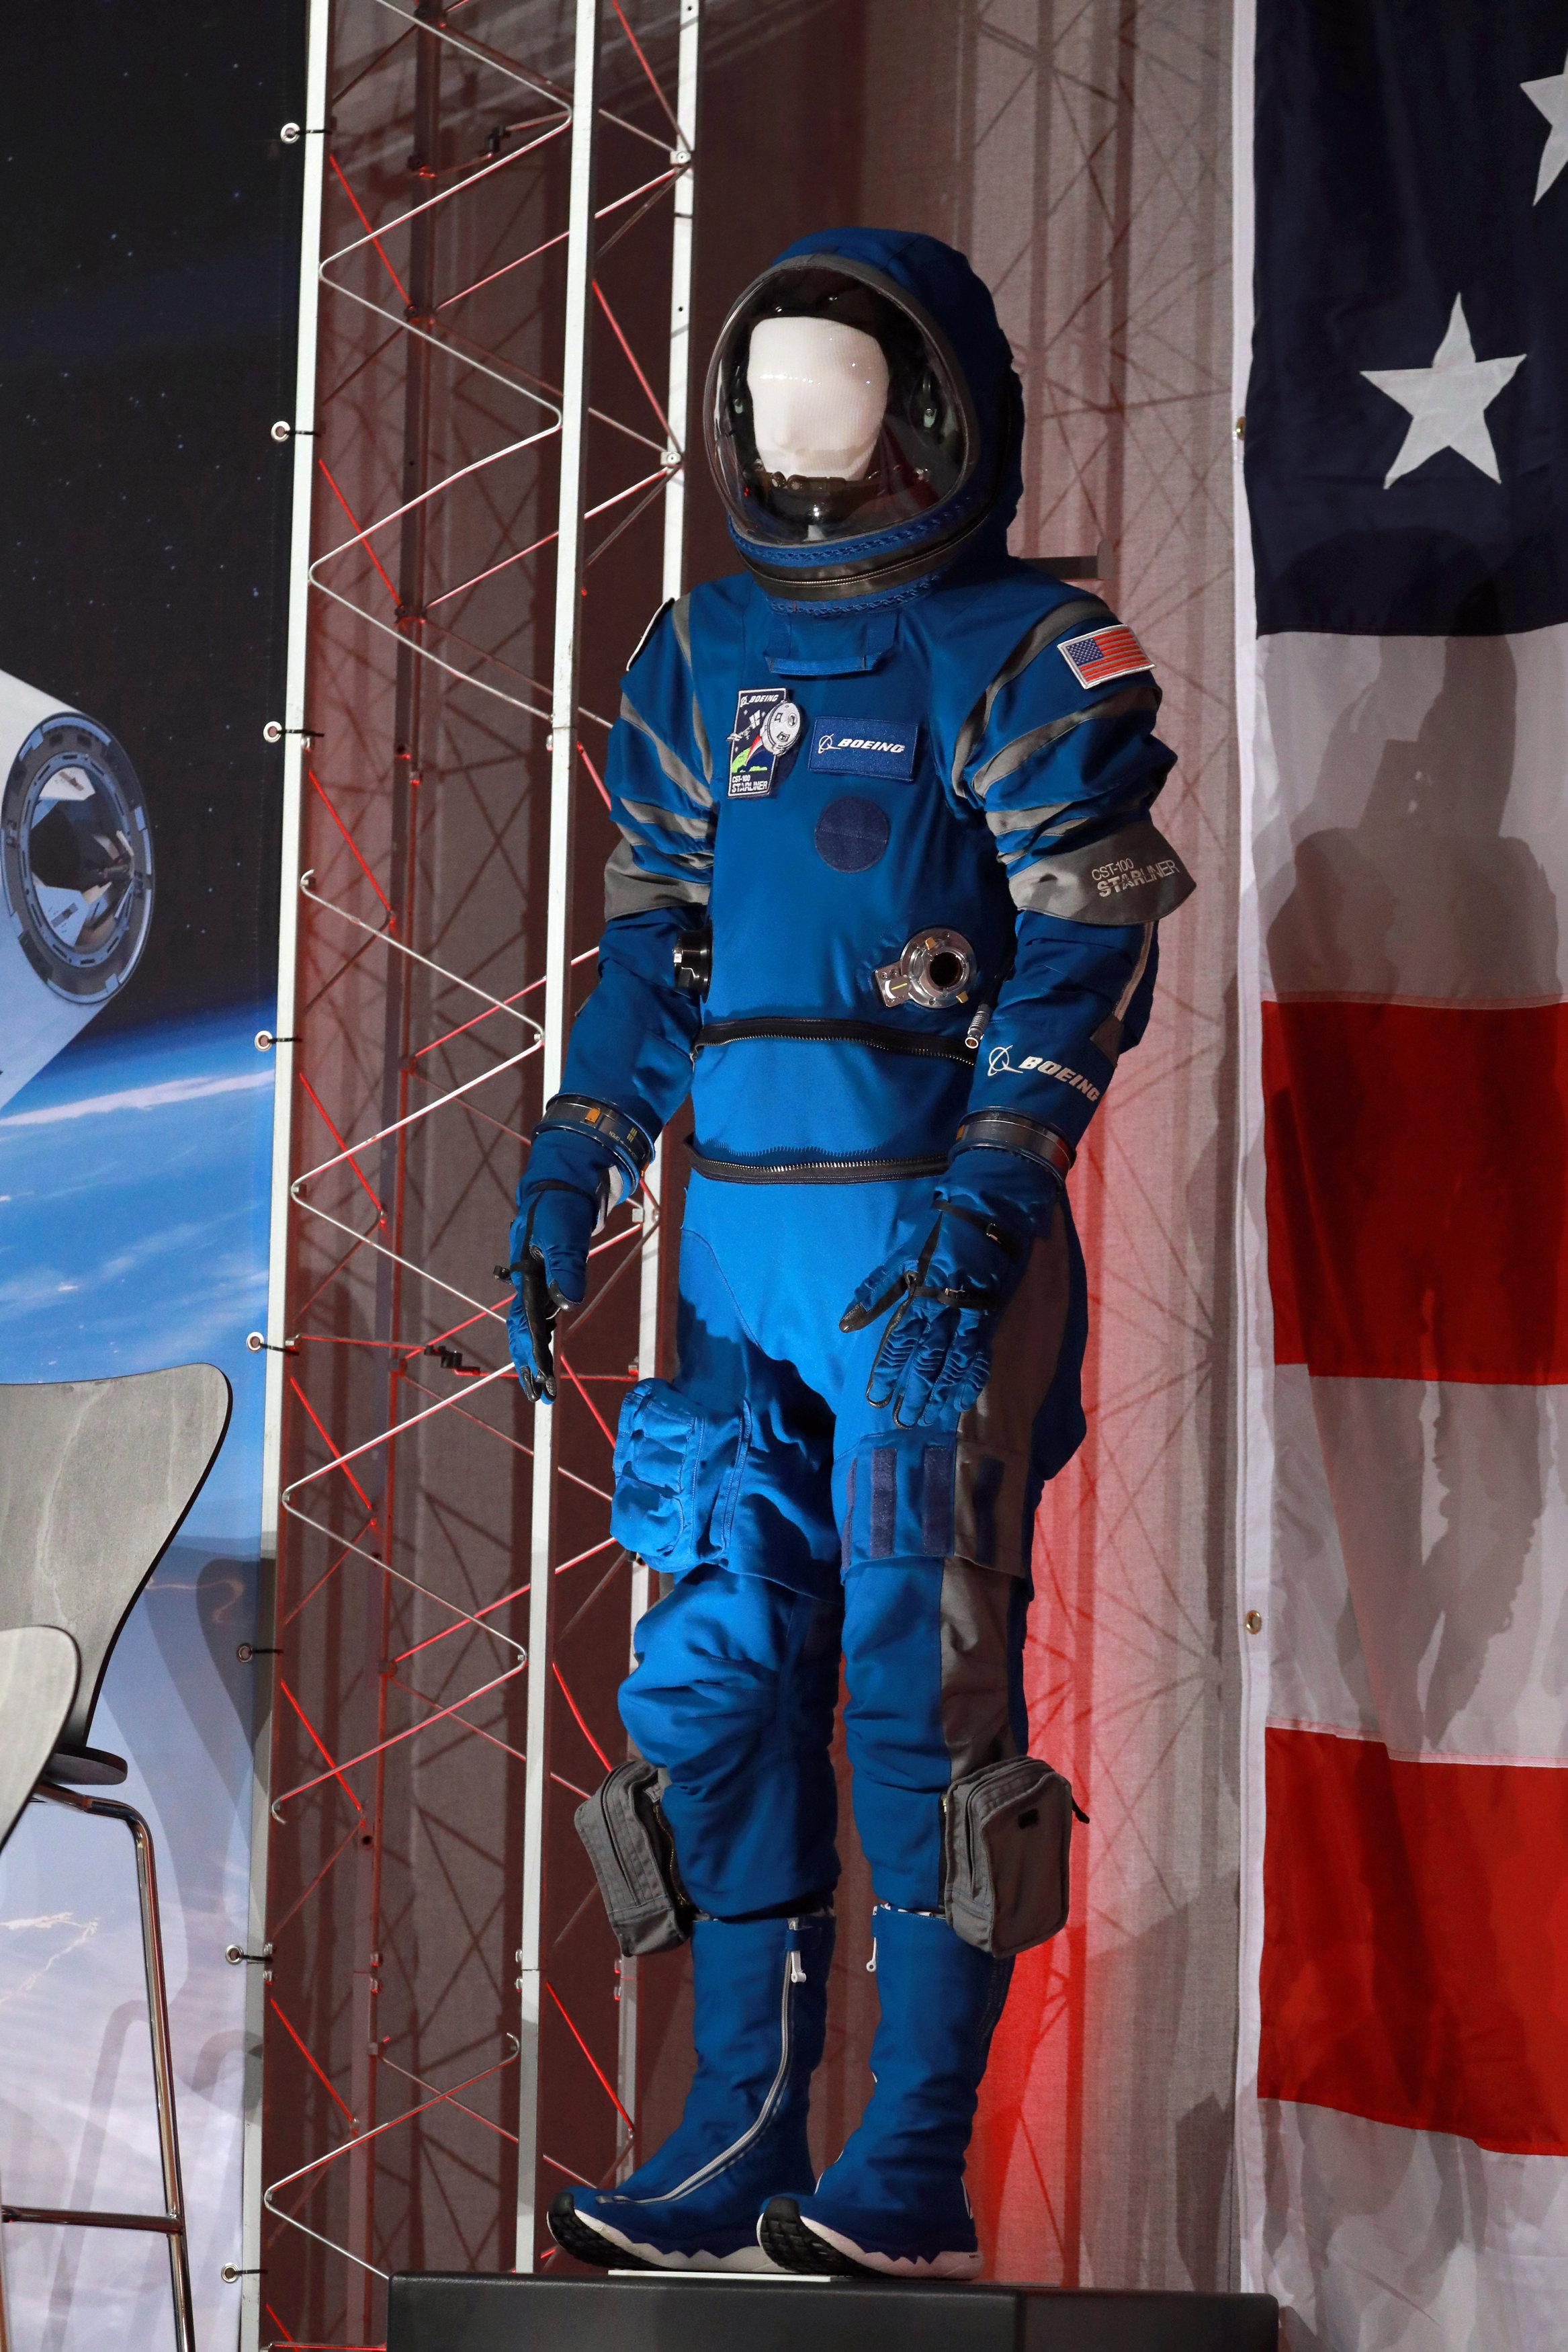 New Boeing spacesuit displayed as NASA announces crew assignments for Boeing CST-100 Starliner and SpaceX Crew Dragon in Houston